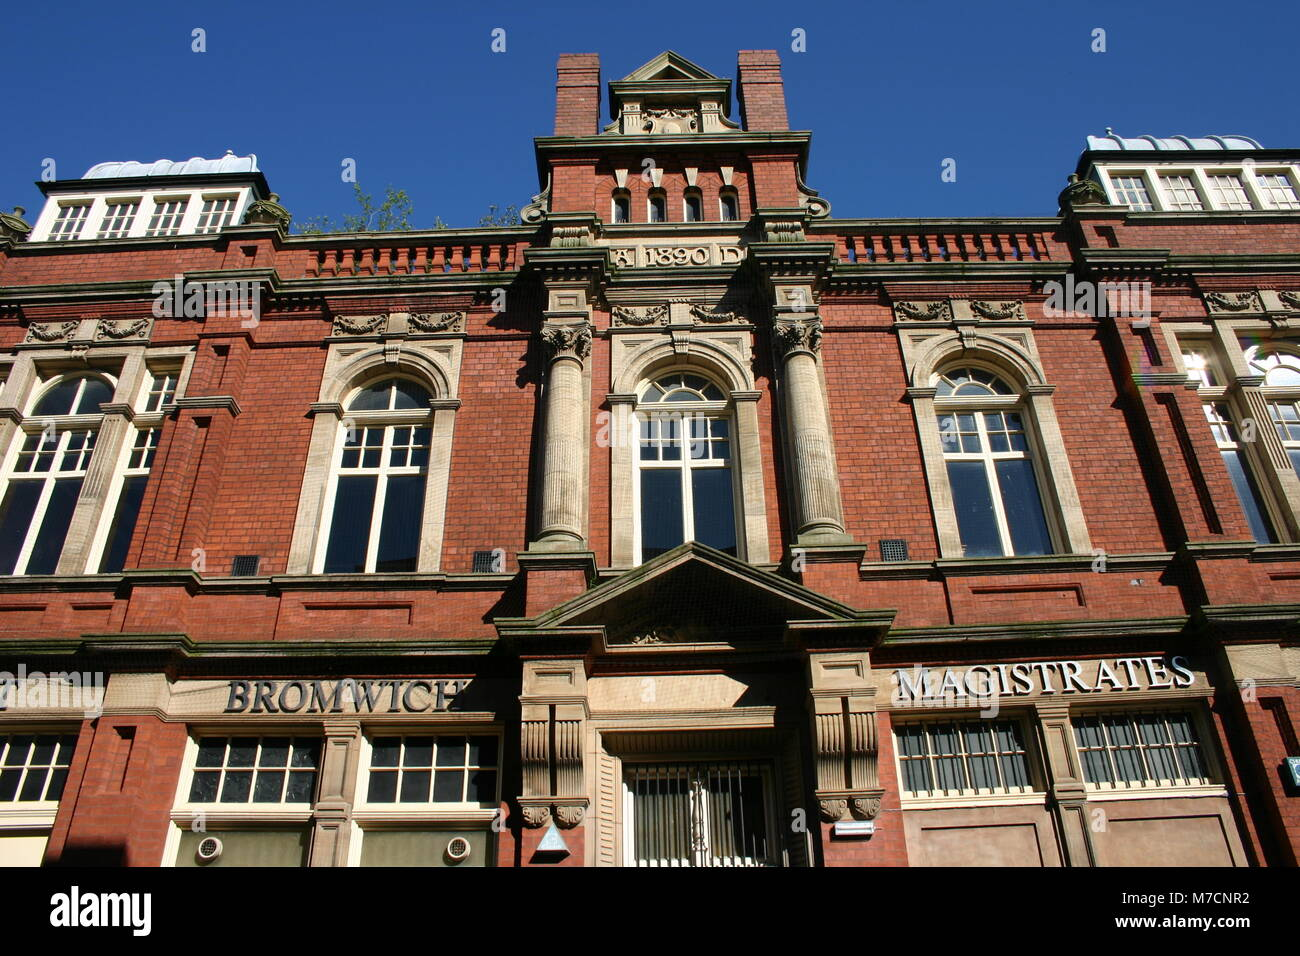 Law Courts, Lombard Street, West Bromwich, built in red brick and terracotta, 1880, by Wood and Kendrick - Stock Image